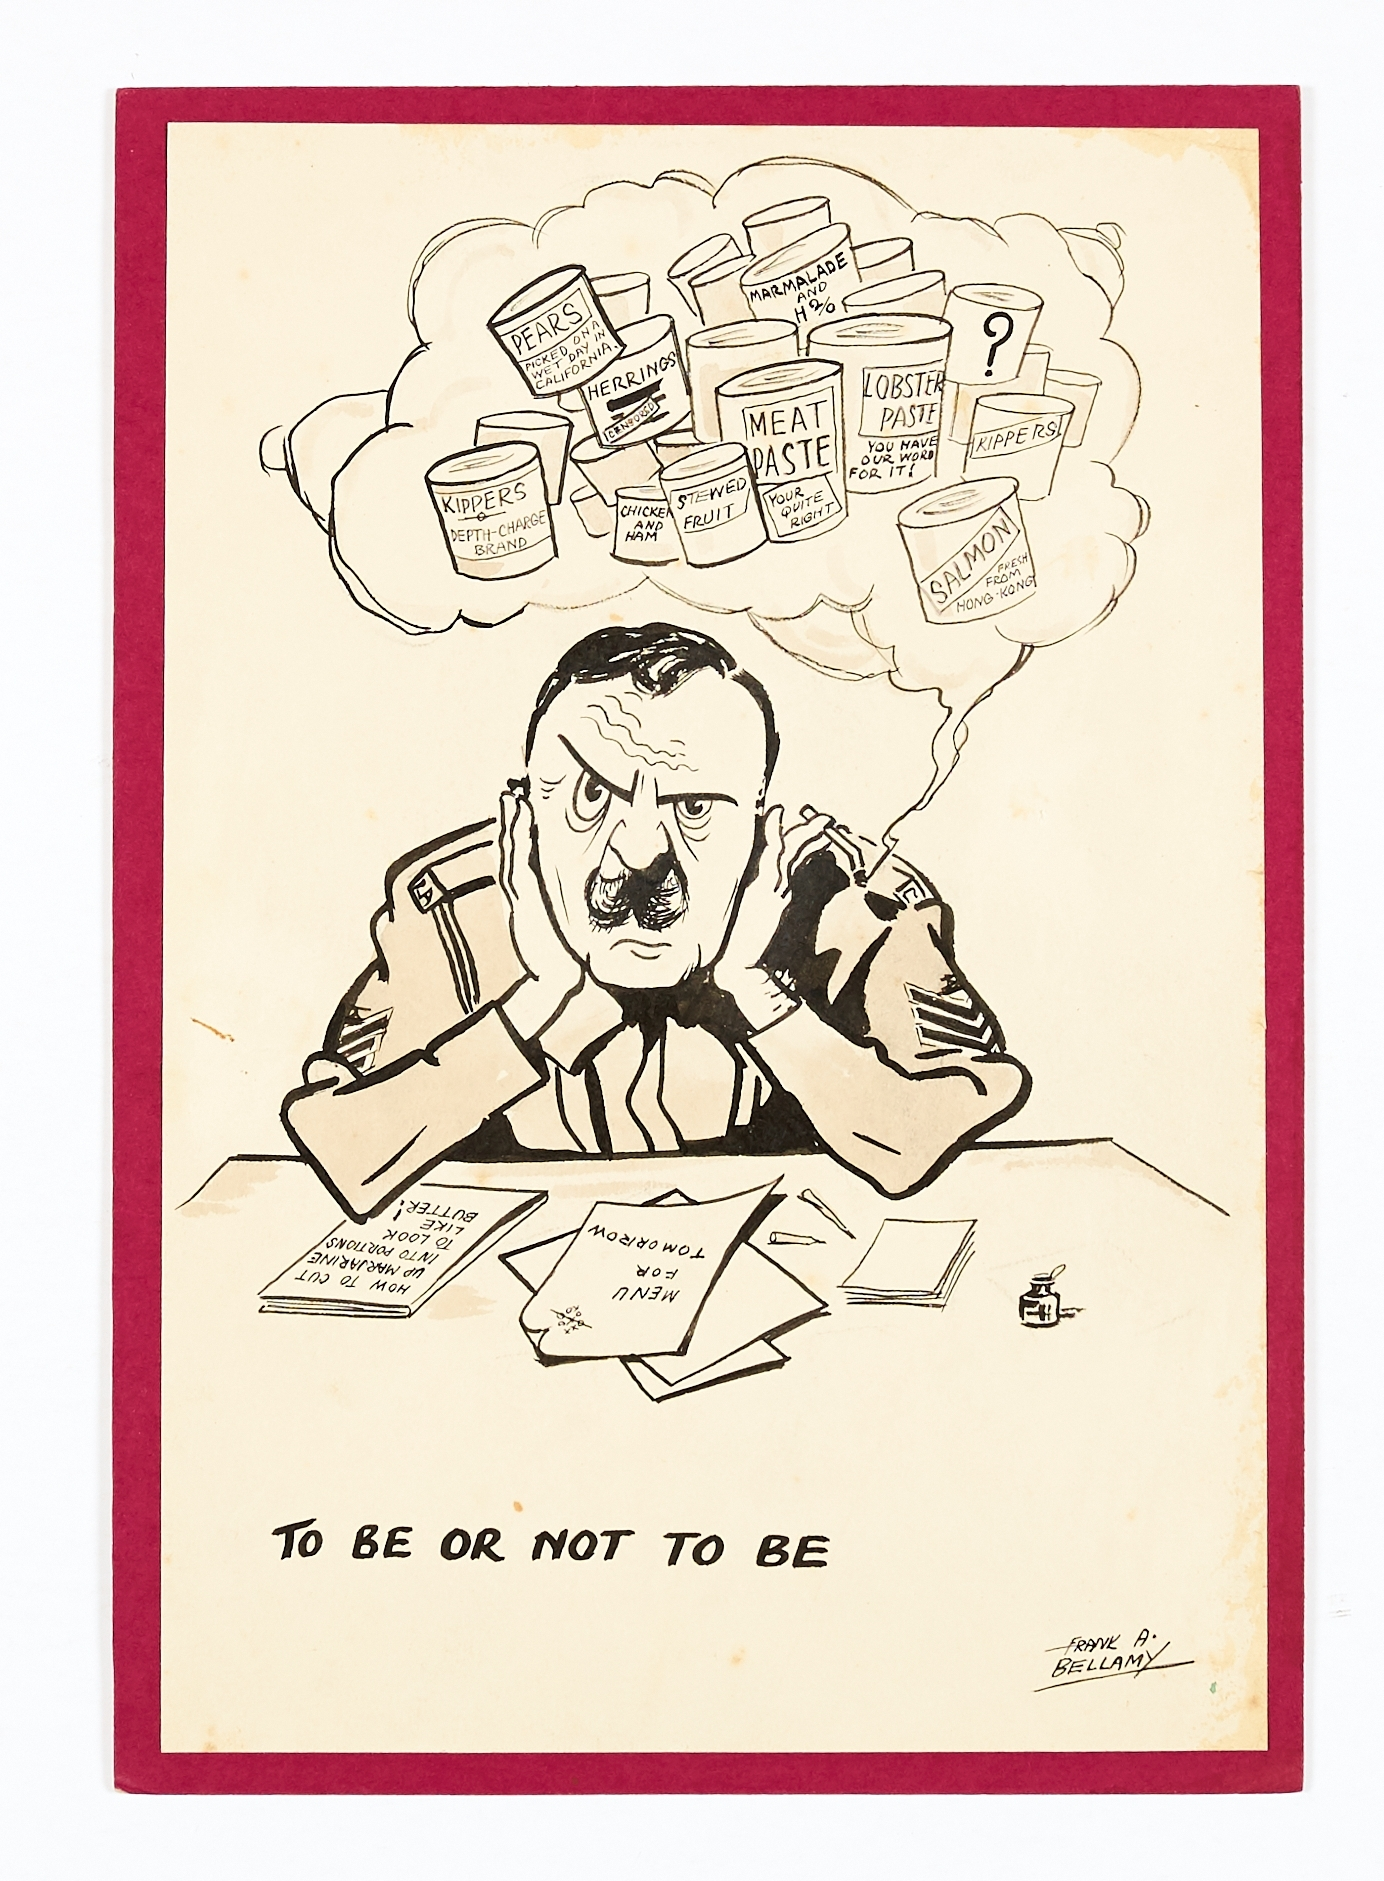 Lot 28 - Frank Bellamy original signed sketch (1940s) 'To Be or Not To Be'. The Catering Corps Sergeant in